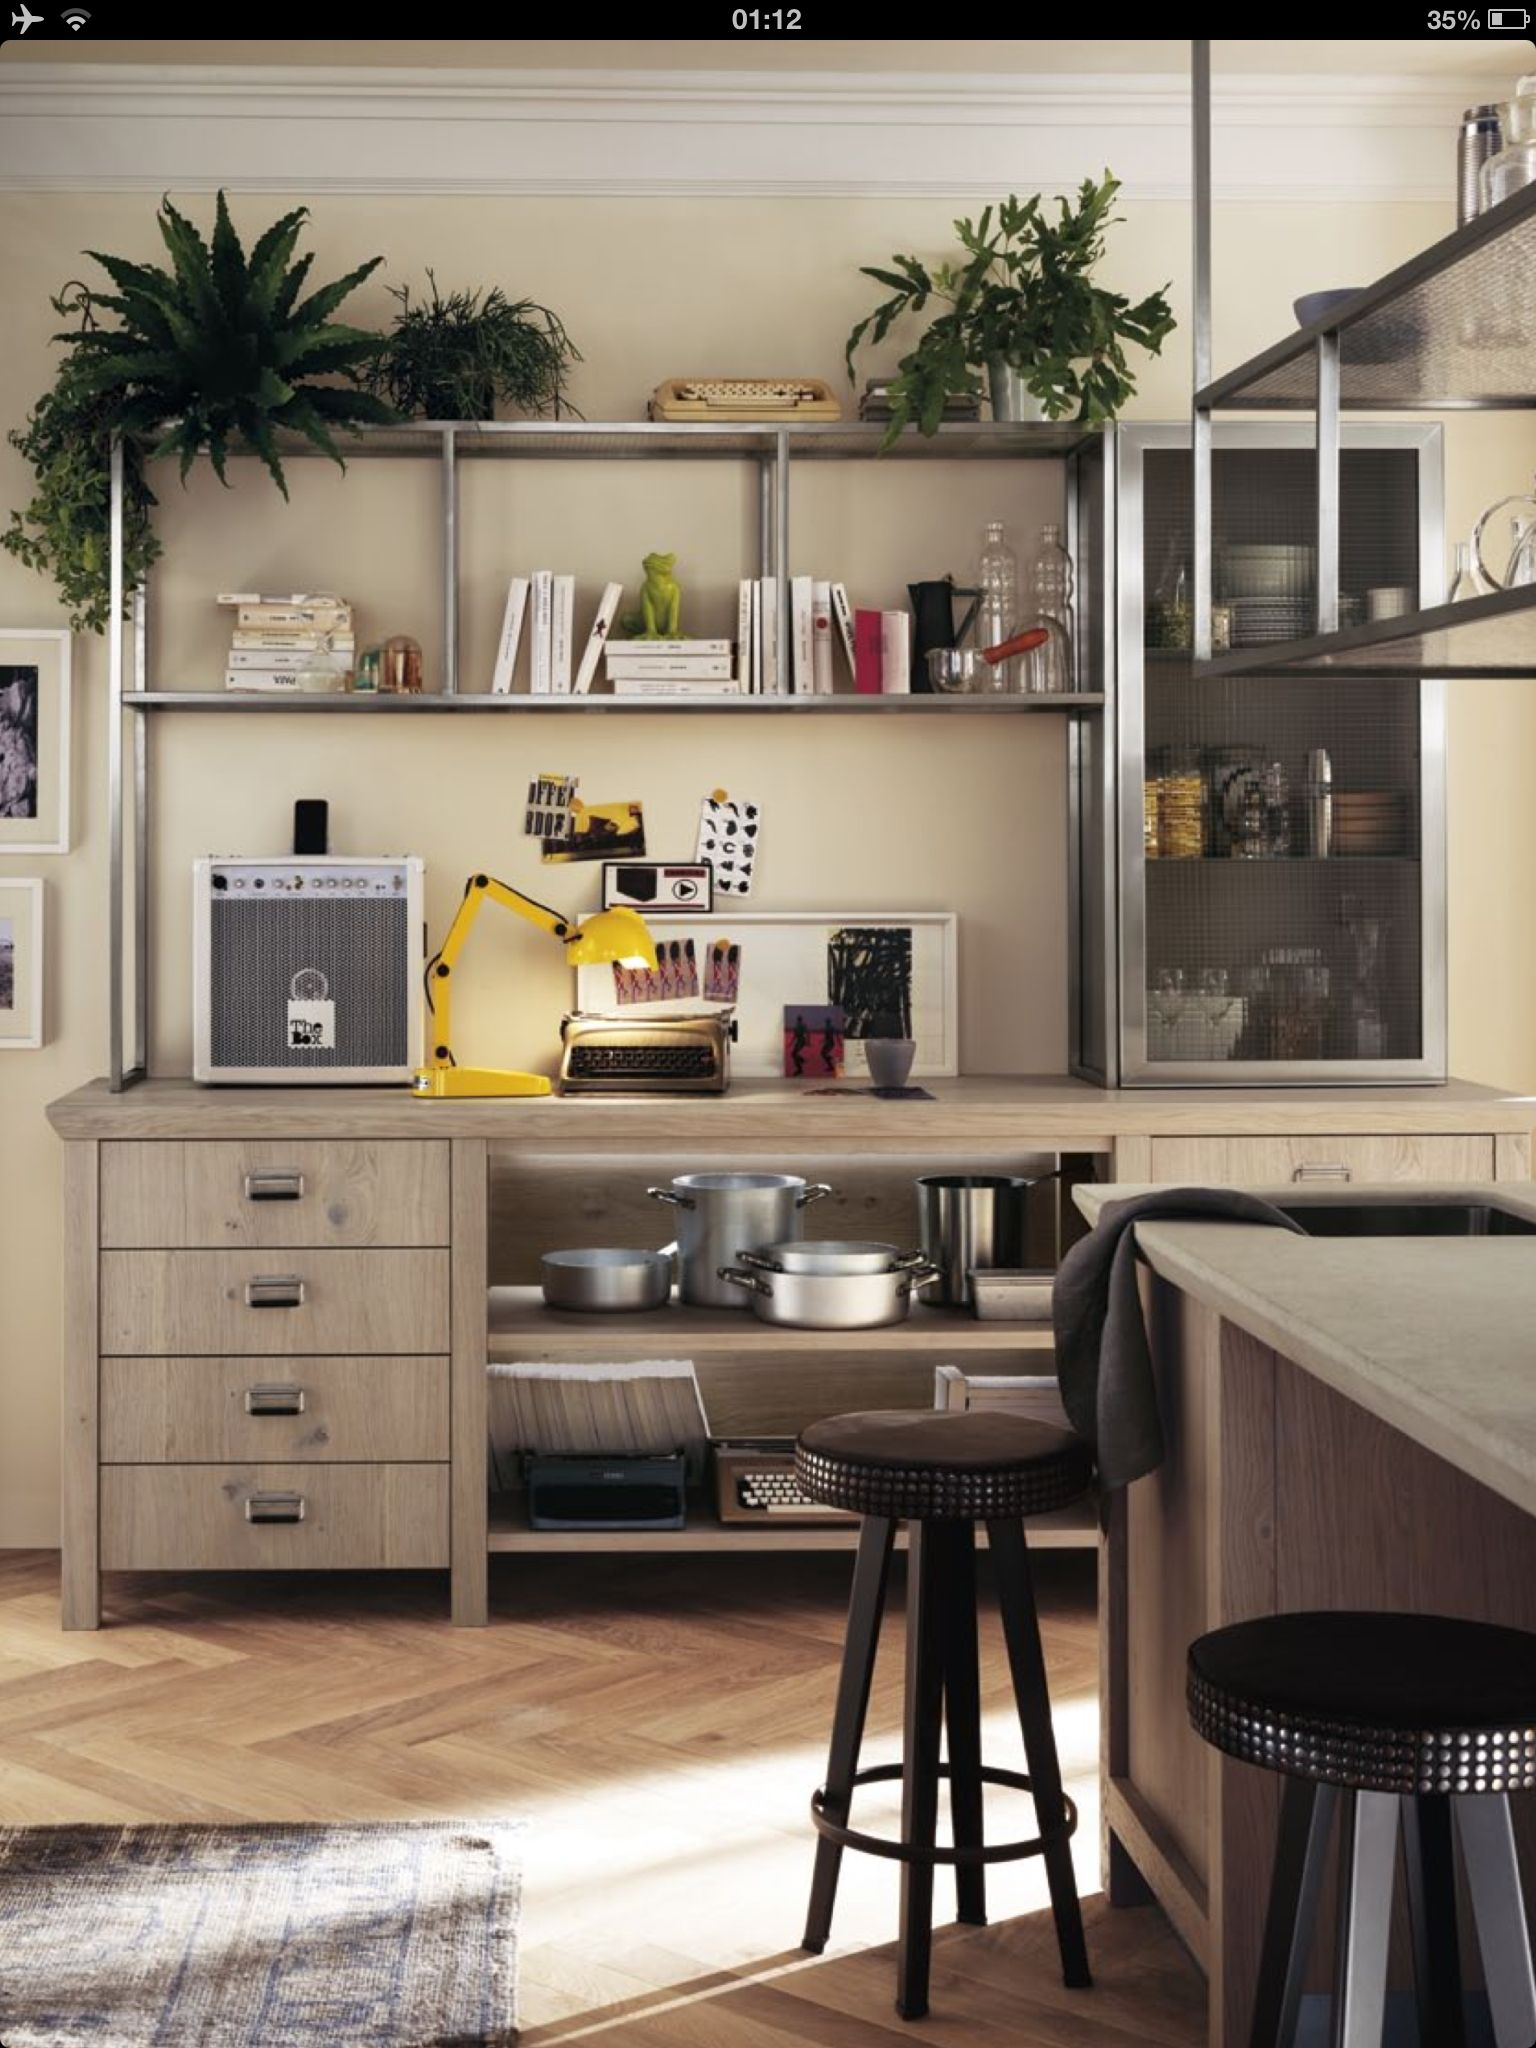 scavolini diesel social kitchen - relaxed and comfy ...